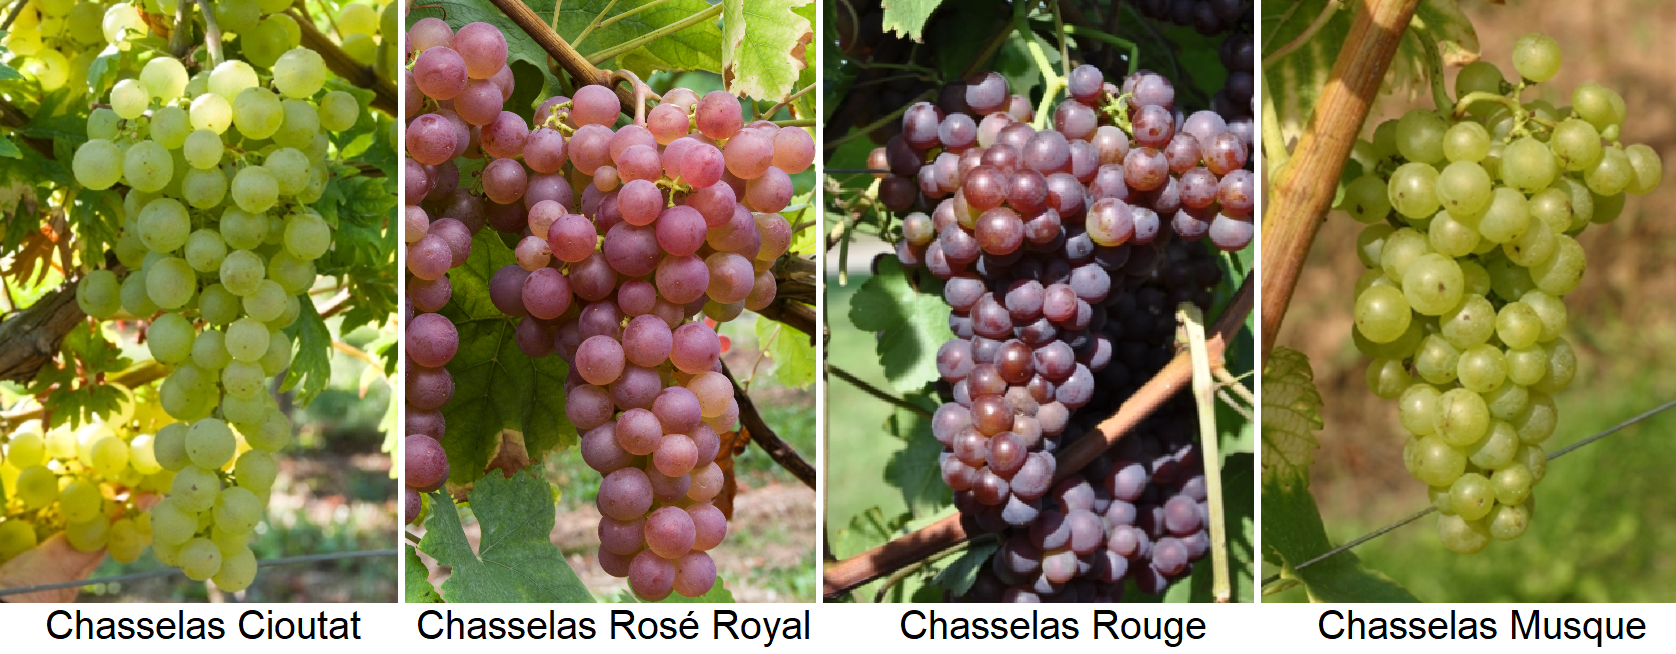 Chasselas - Chasselas Cioutat, Chasselas Rose Royal, Chasselas Rouge, Chasselas Musque